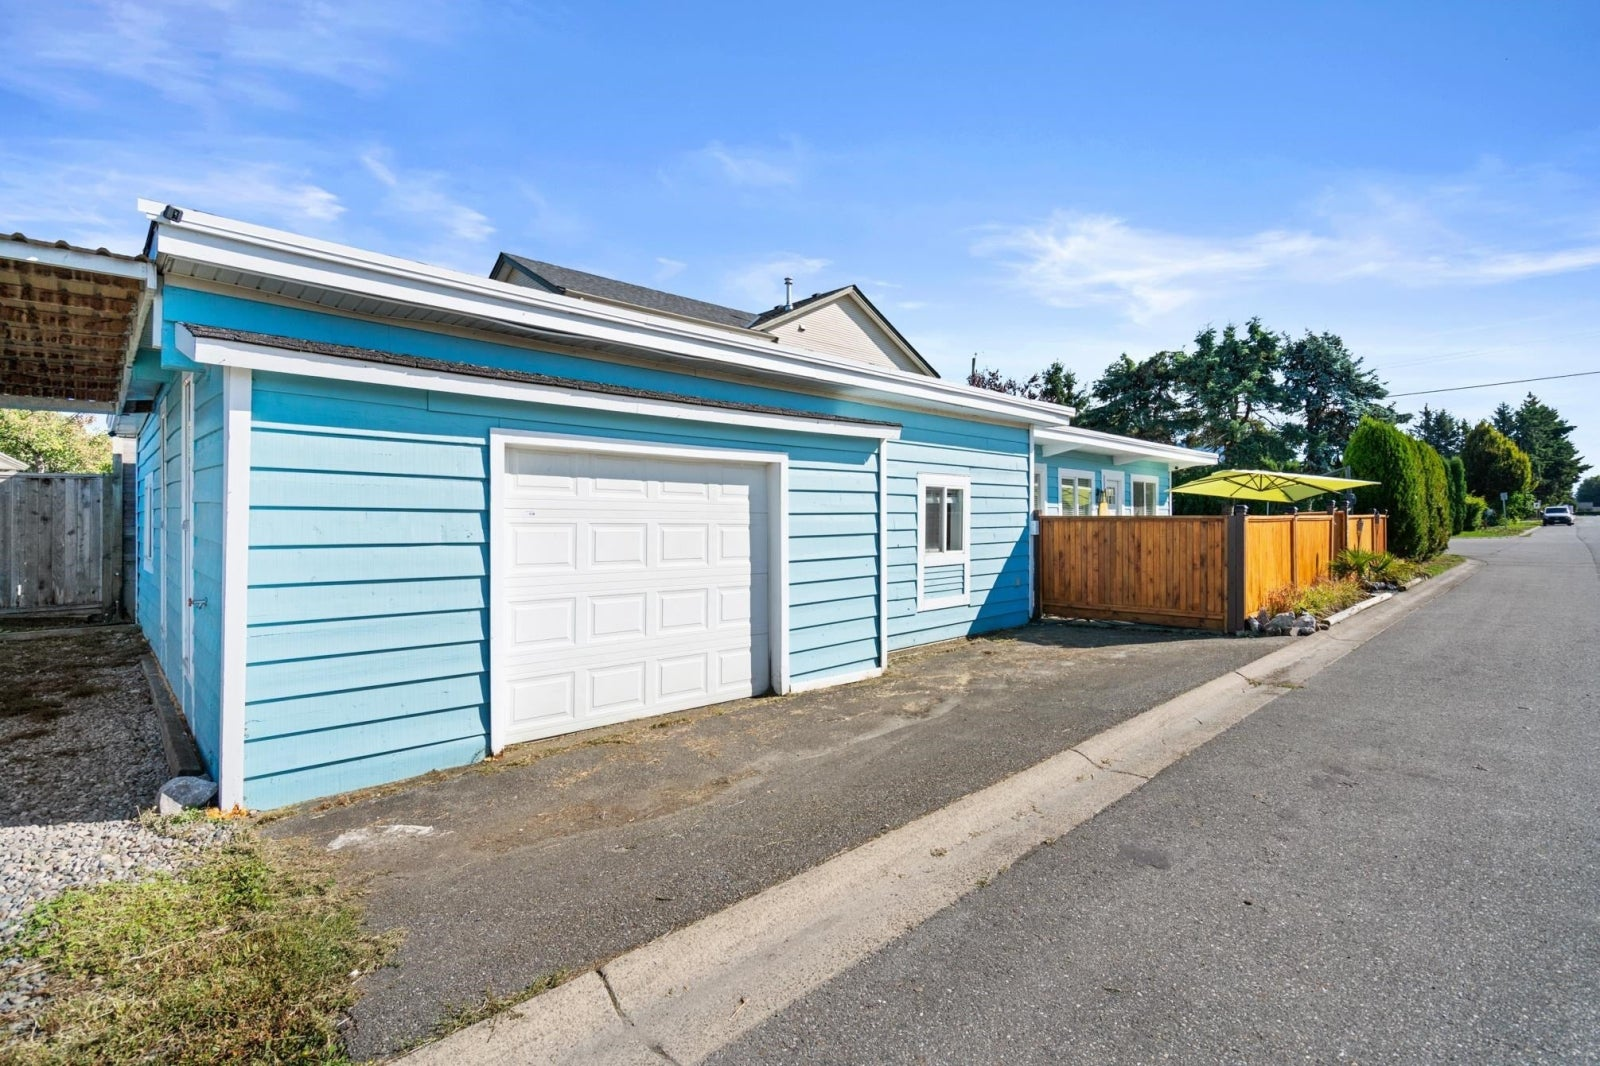 34705 4TH AVENUE - Abbotsford East House/Single Family for sale, 3 Bedrooms (R2620137) #33